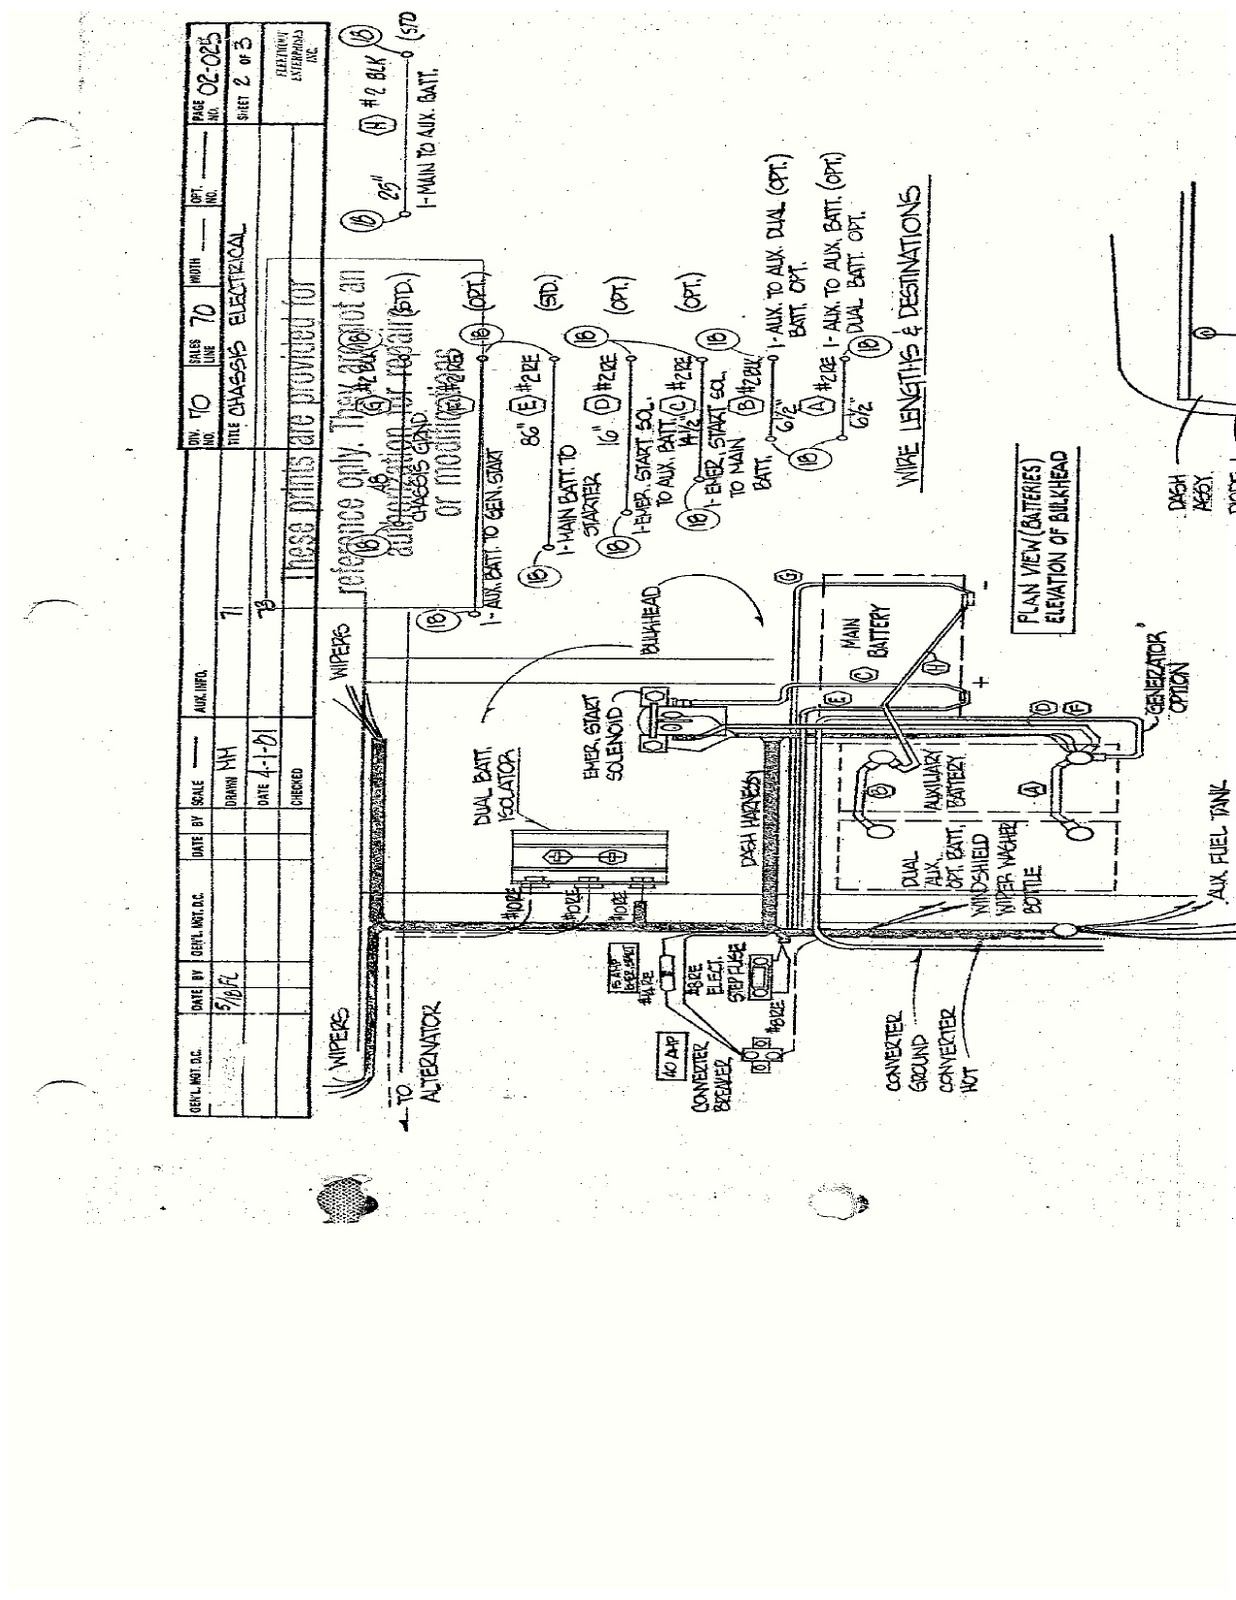 hight resolution of 1982 p30 wiring diagram another blog about wiring diagram u2022 rh ok2 infoservice ru